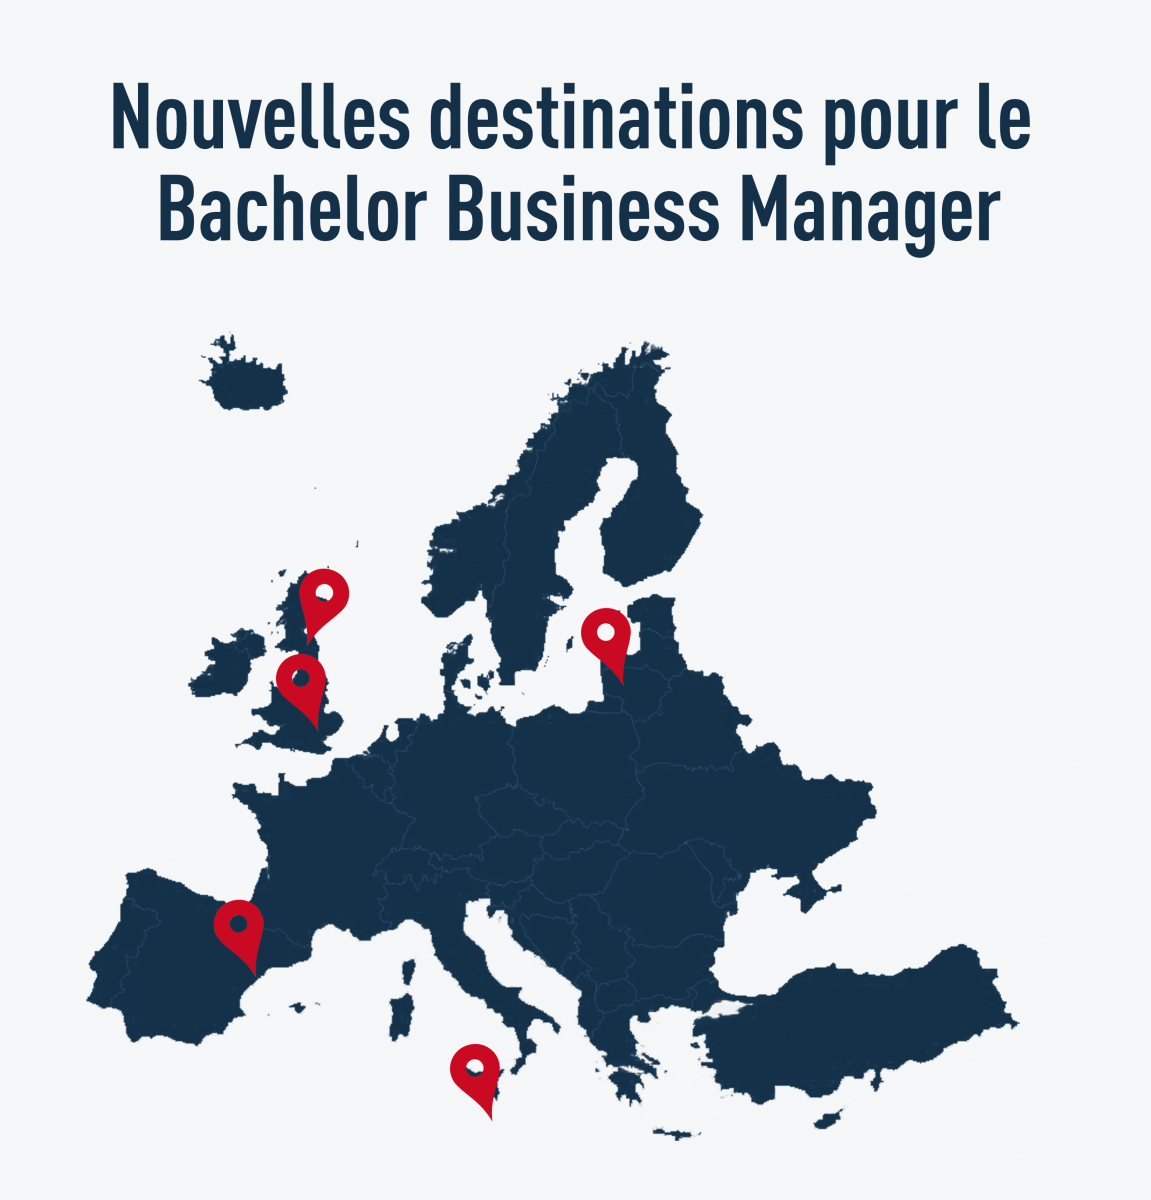 Bachelor Business Manager nouvelles destinations en Europe